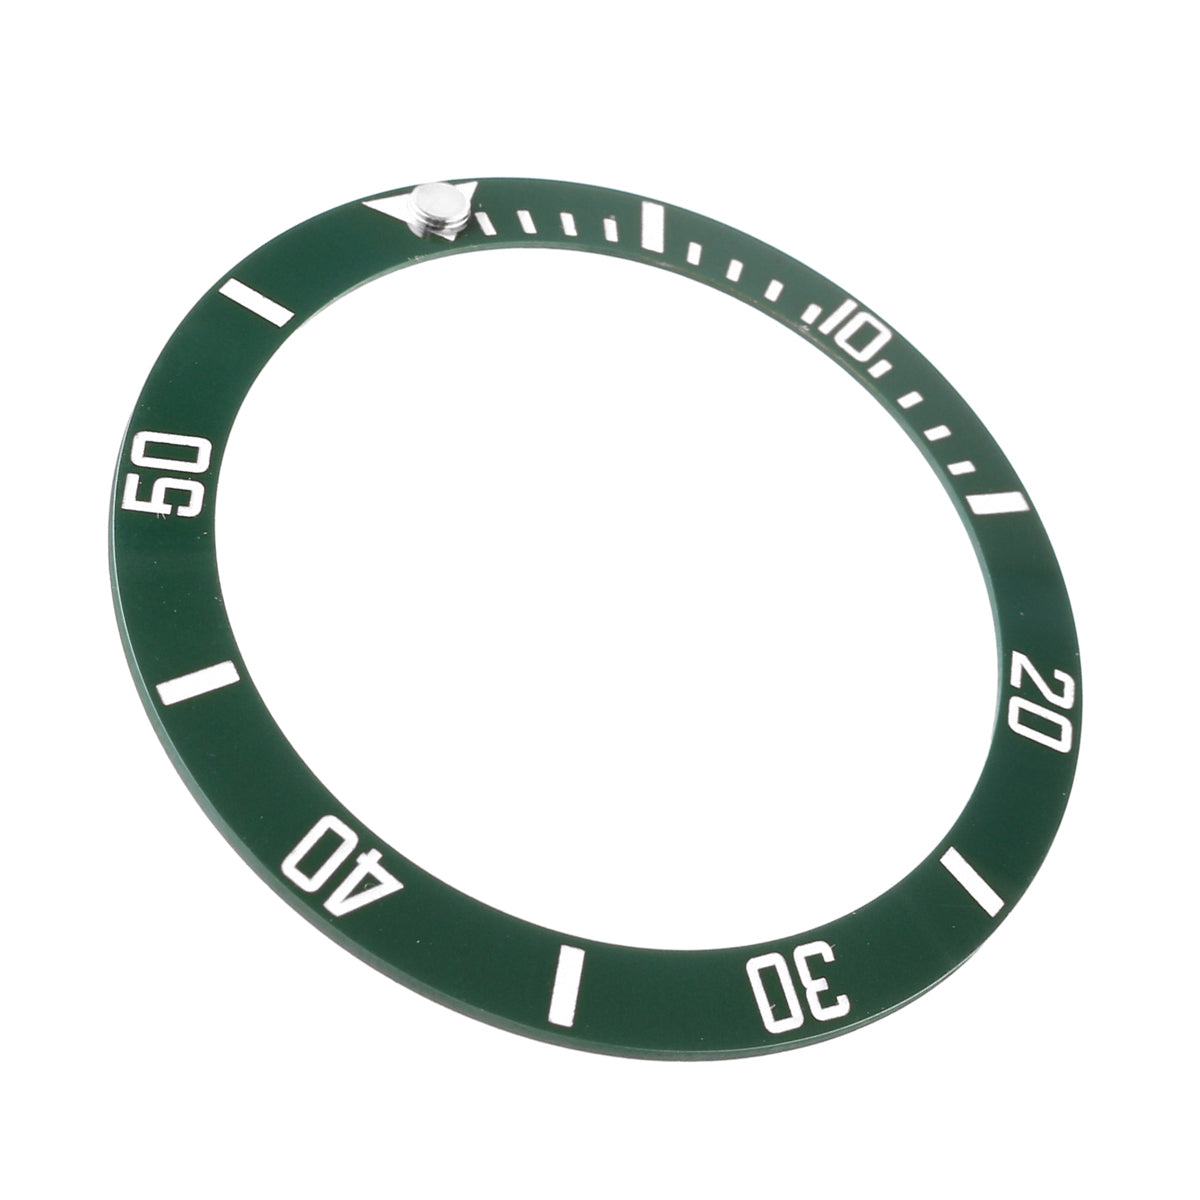 38mm Watch Cover Ceramic Bezel Insert for 40mm Submariner